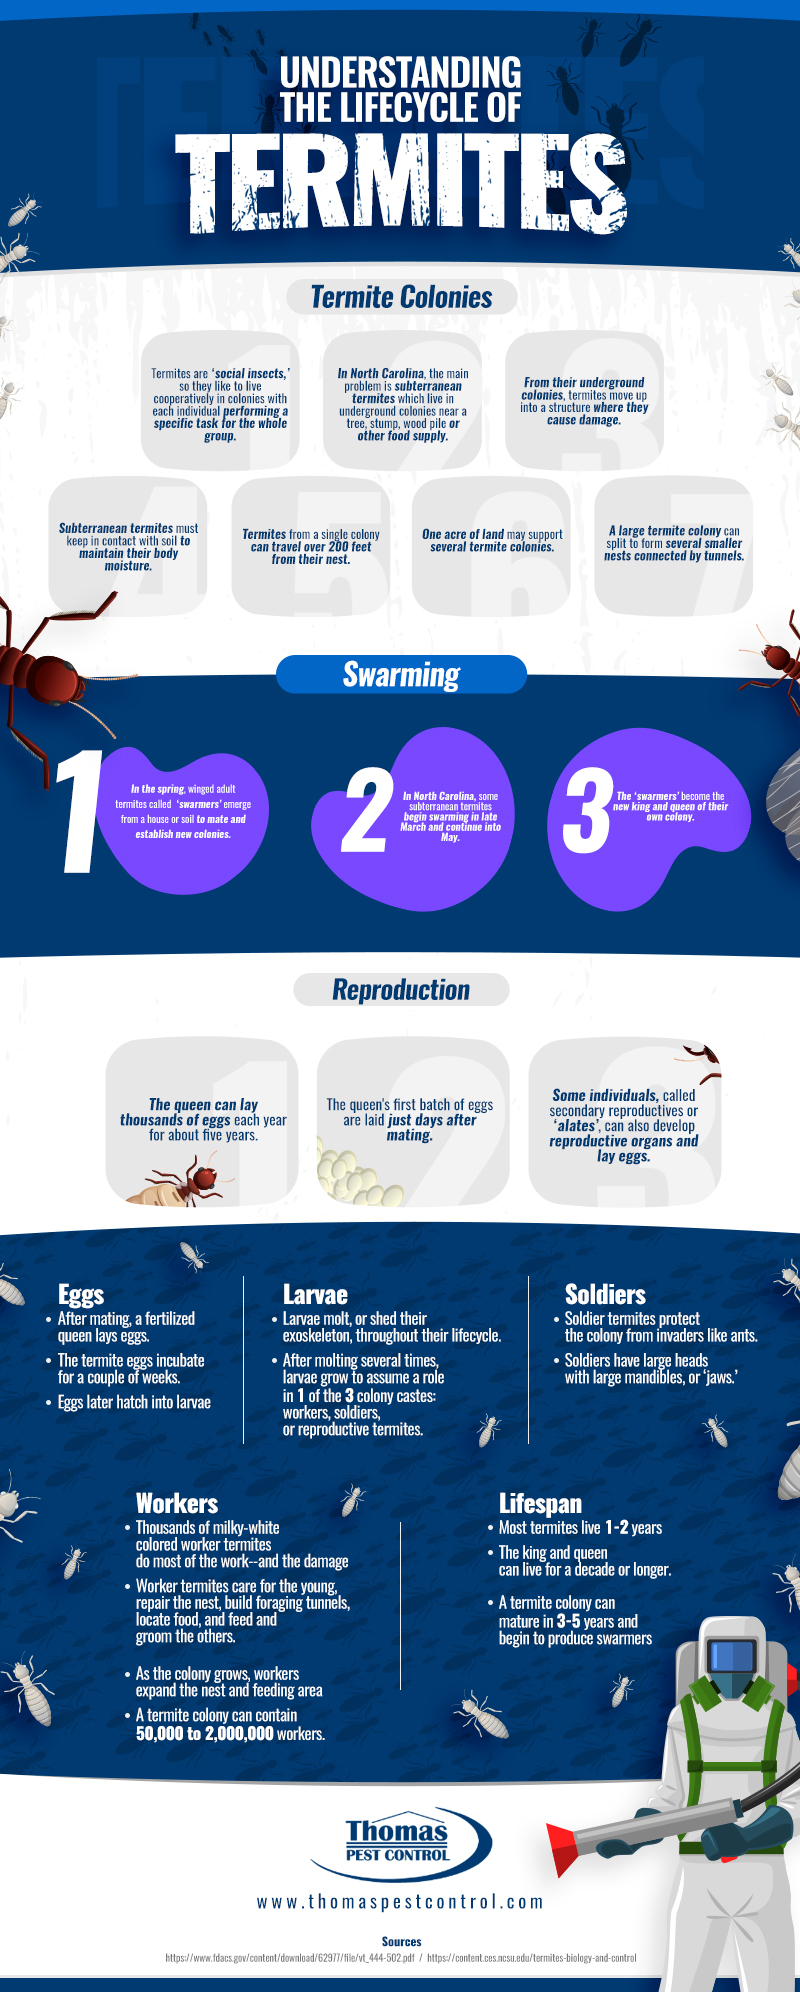 Understanding the Lifecycle of Termites-D5 (1)